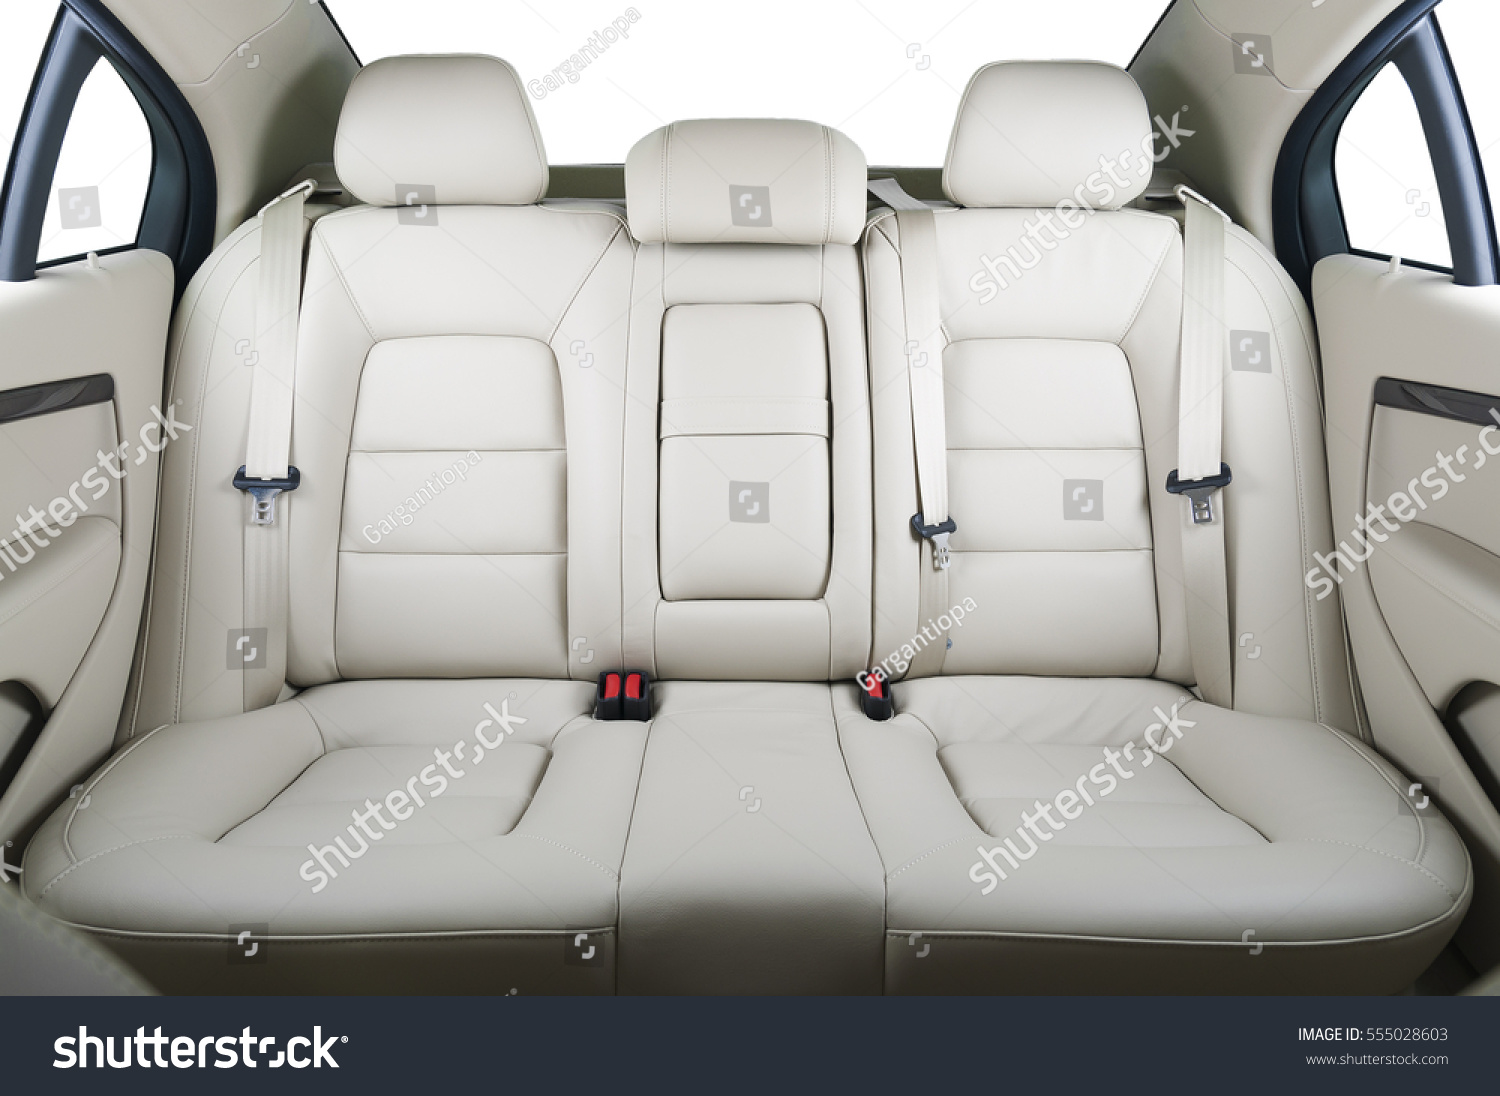 back passenger seats modern luxury car stock photo 555028603 shutterstock. Black Bedroom Furniture Sets. Home Design Ideas